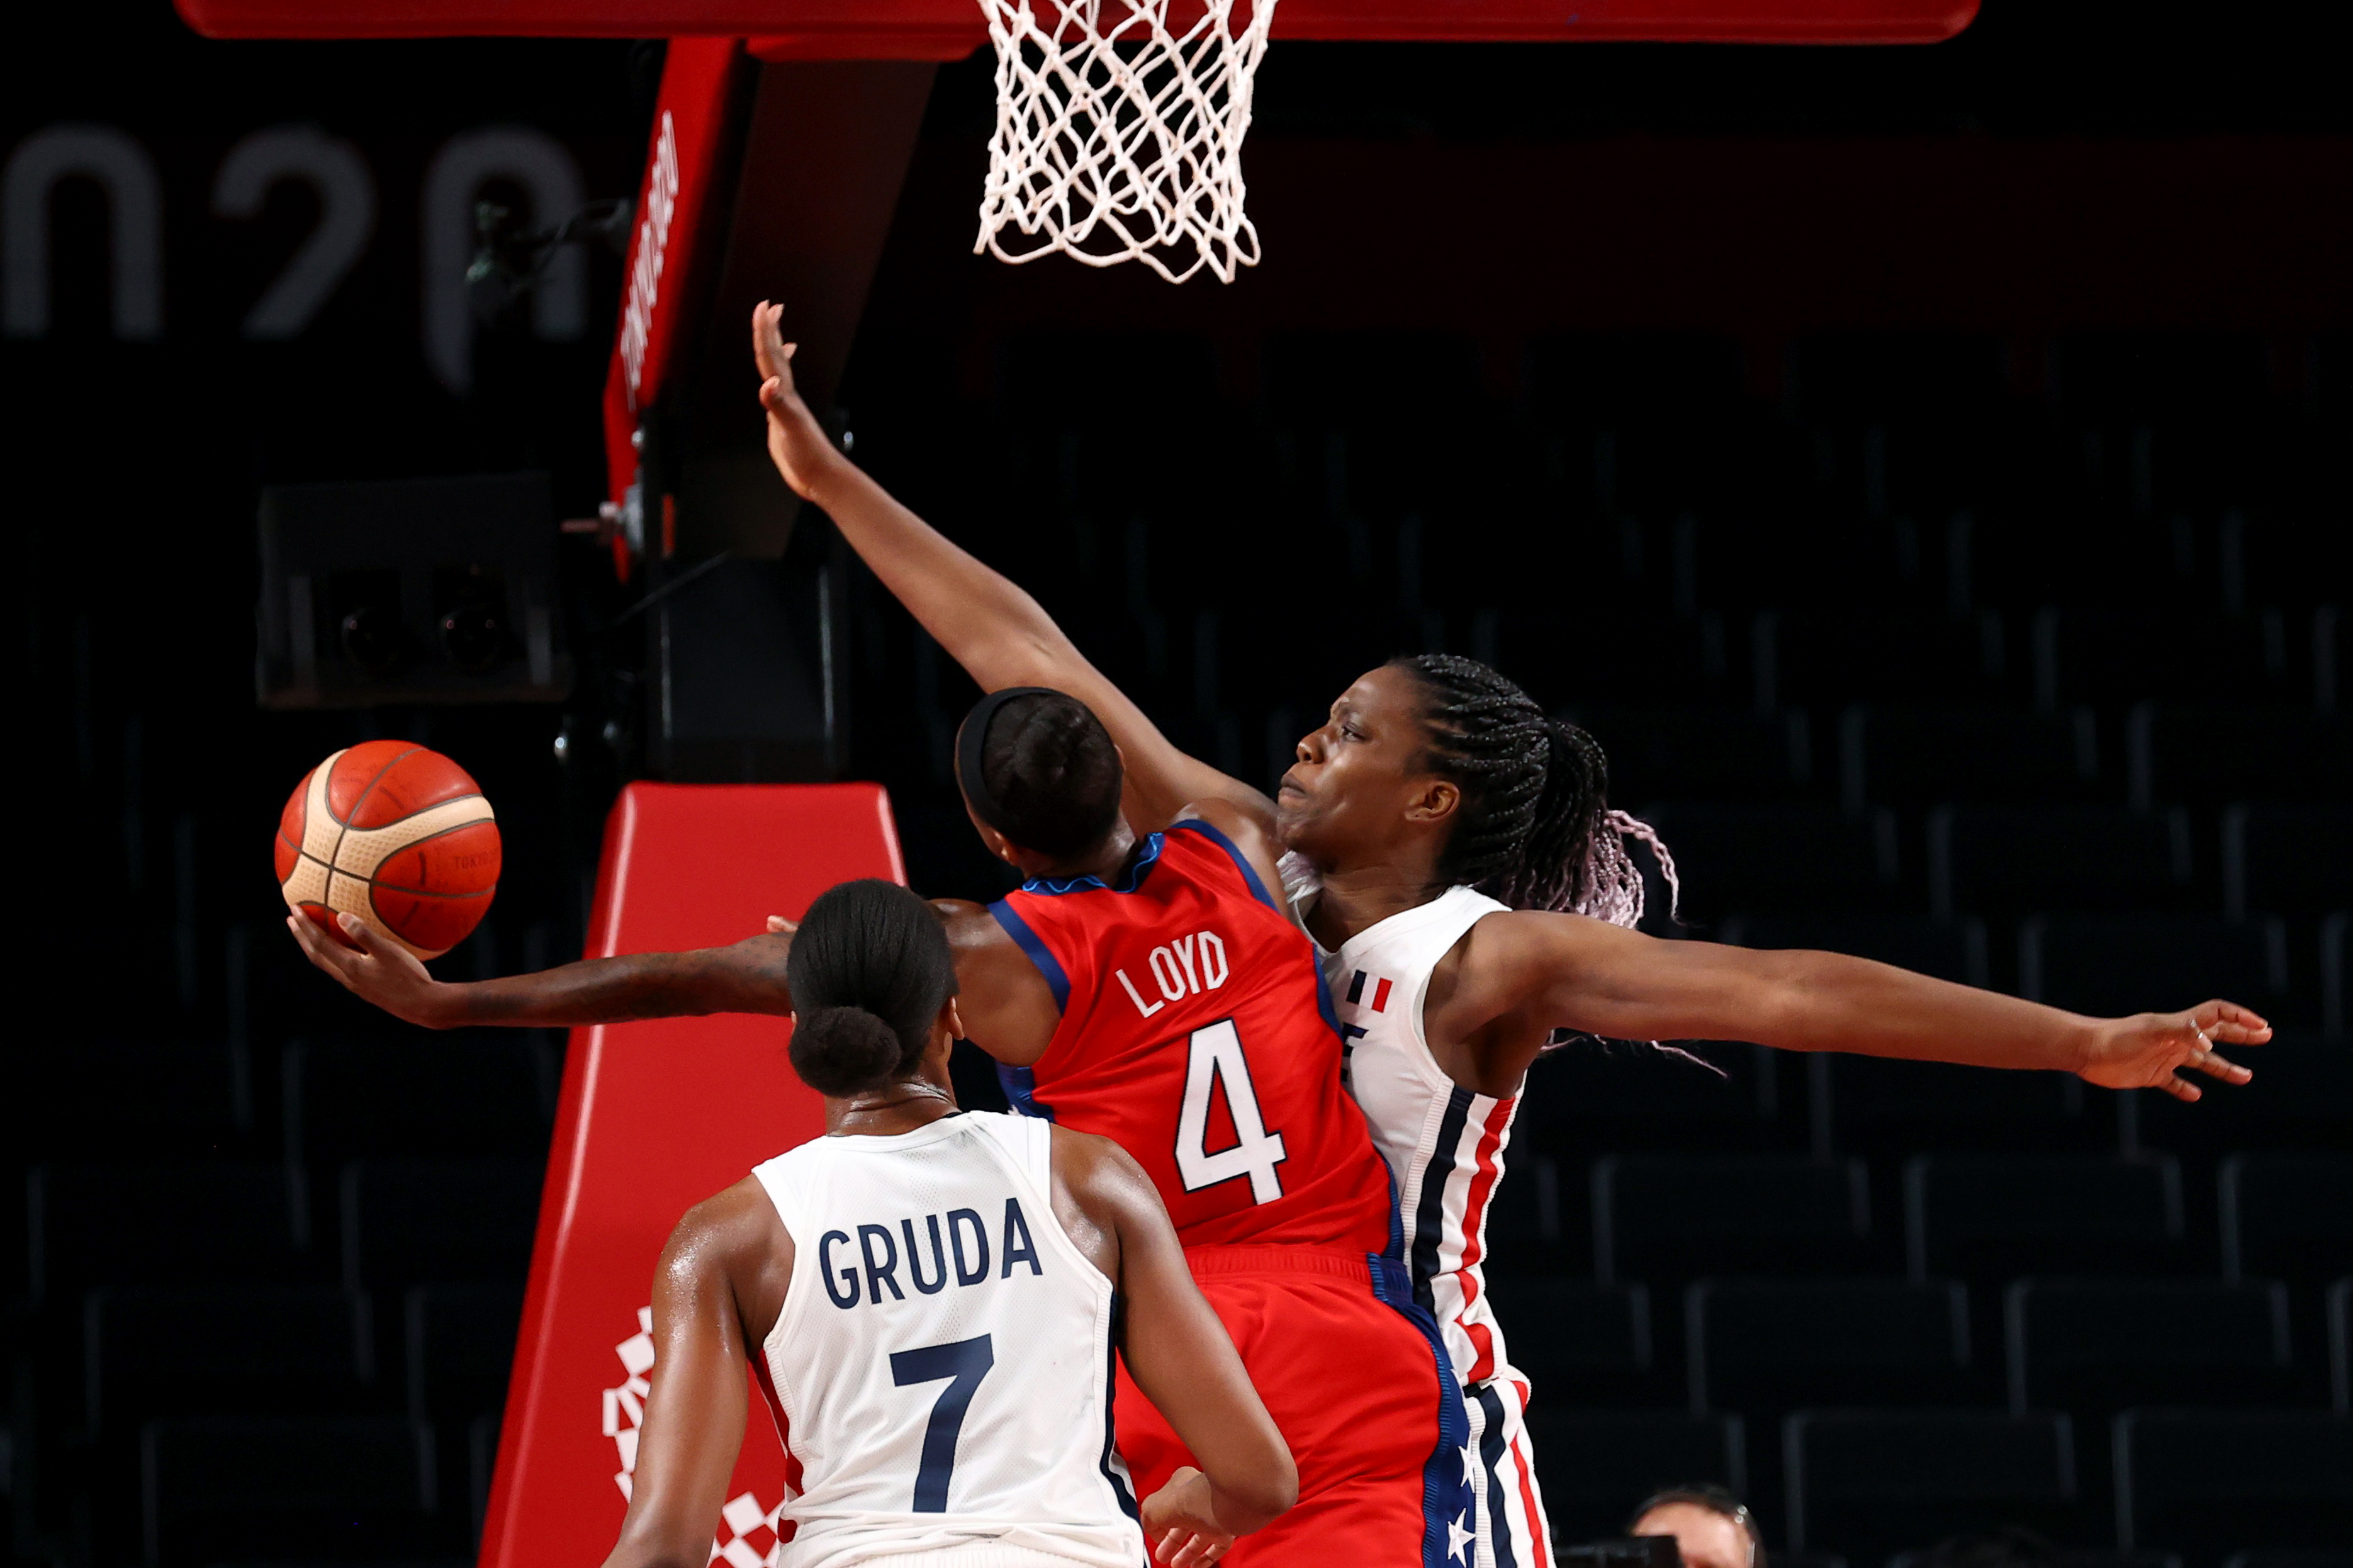 Tokyo 2020 Olympics - Basketball - Women - Group B - France v United States - Saitama Super Arena, Saitama, Japan - August 2, 2021. Jewell Loyd of the United States in action with Sandrine Gruda of France and Endene Miyem of France REUTERS/Brian Snyder